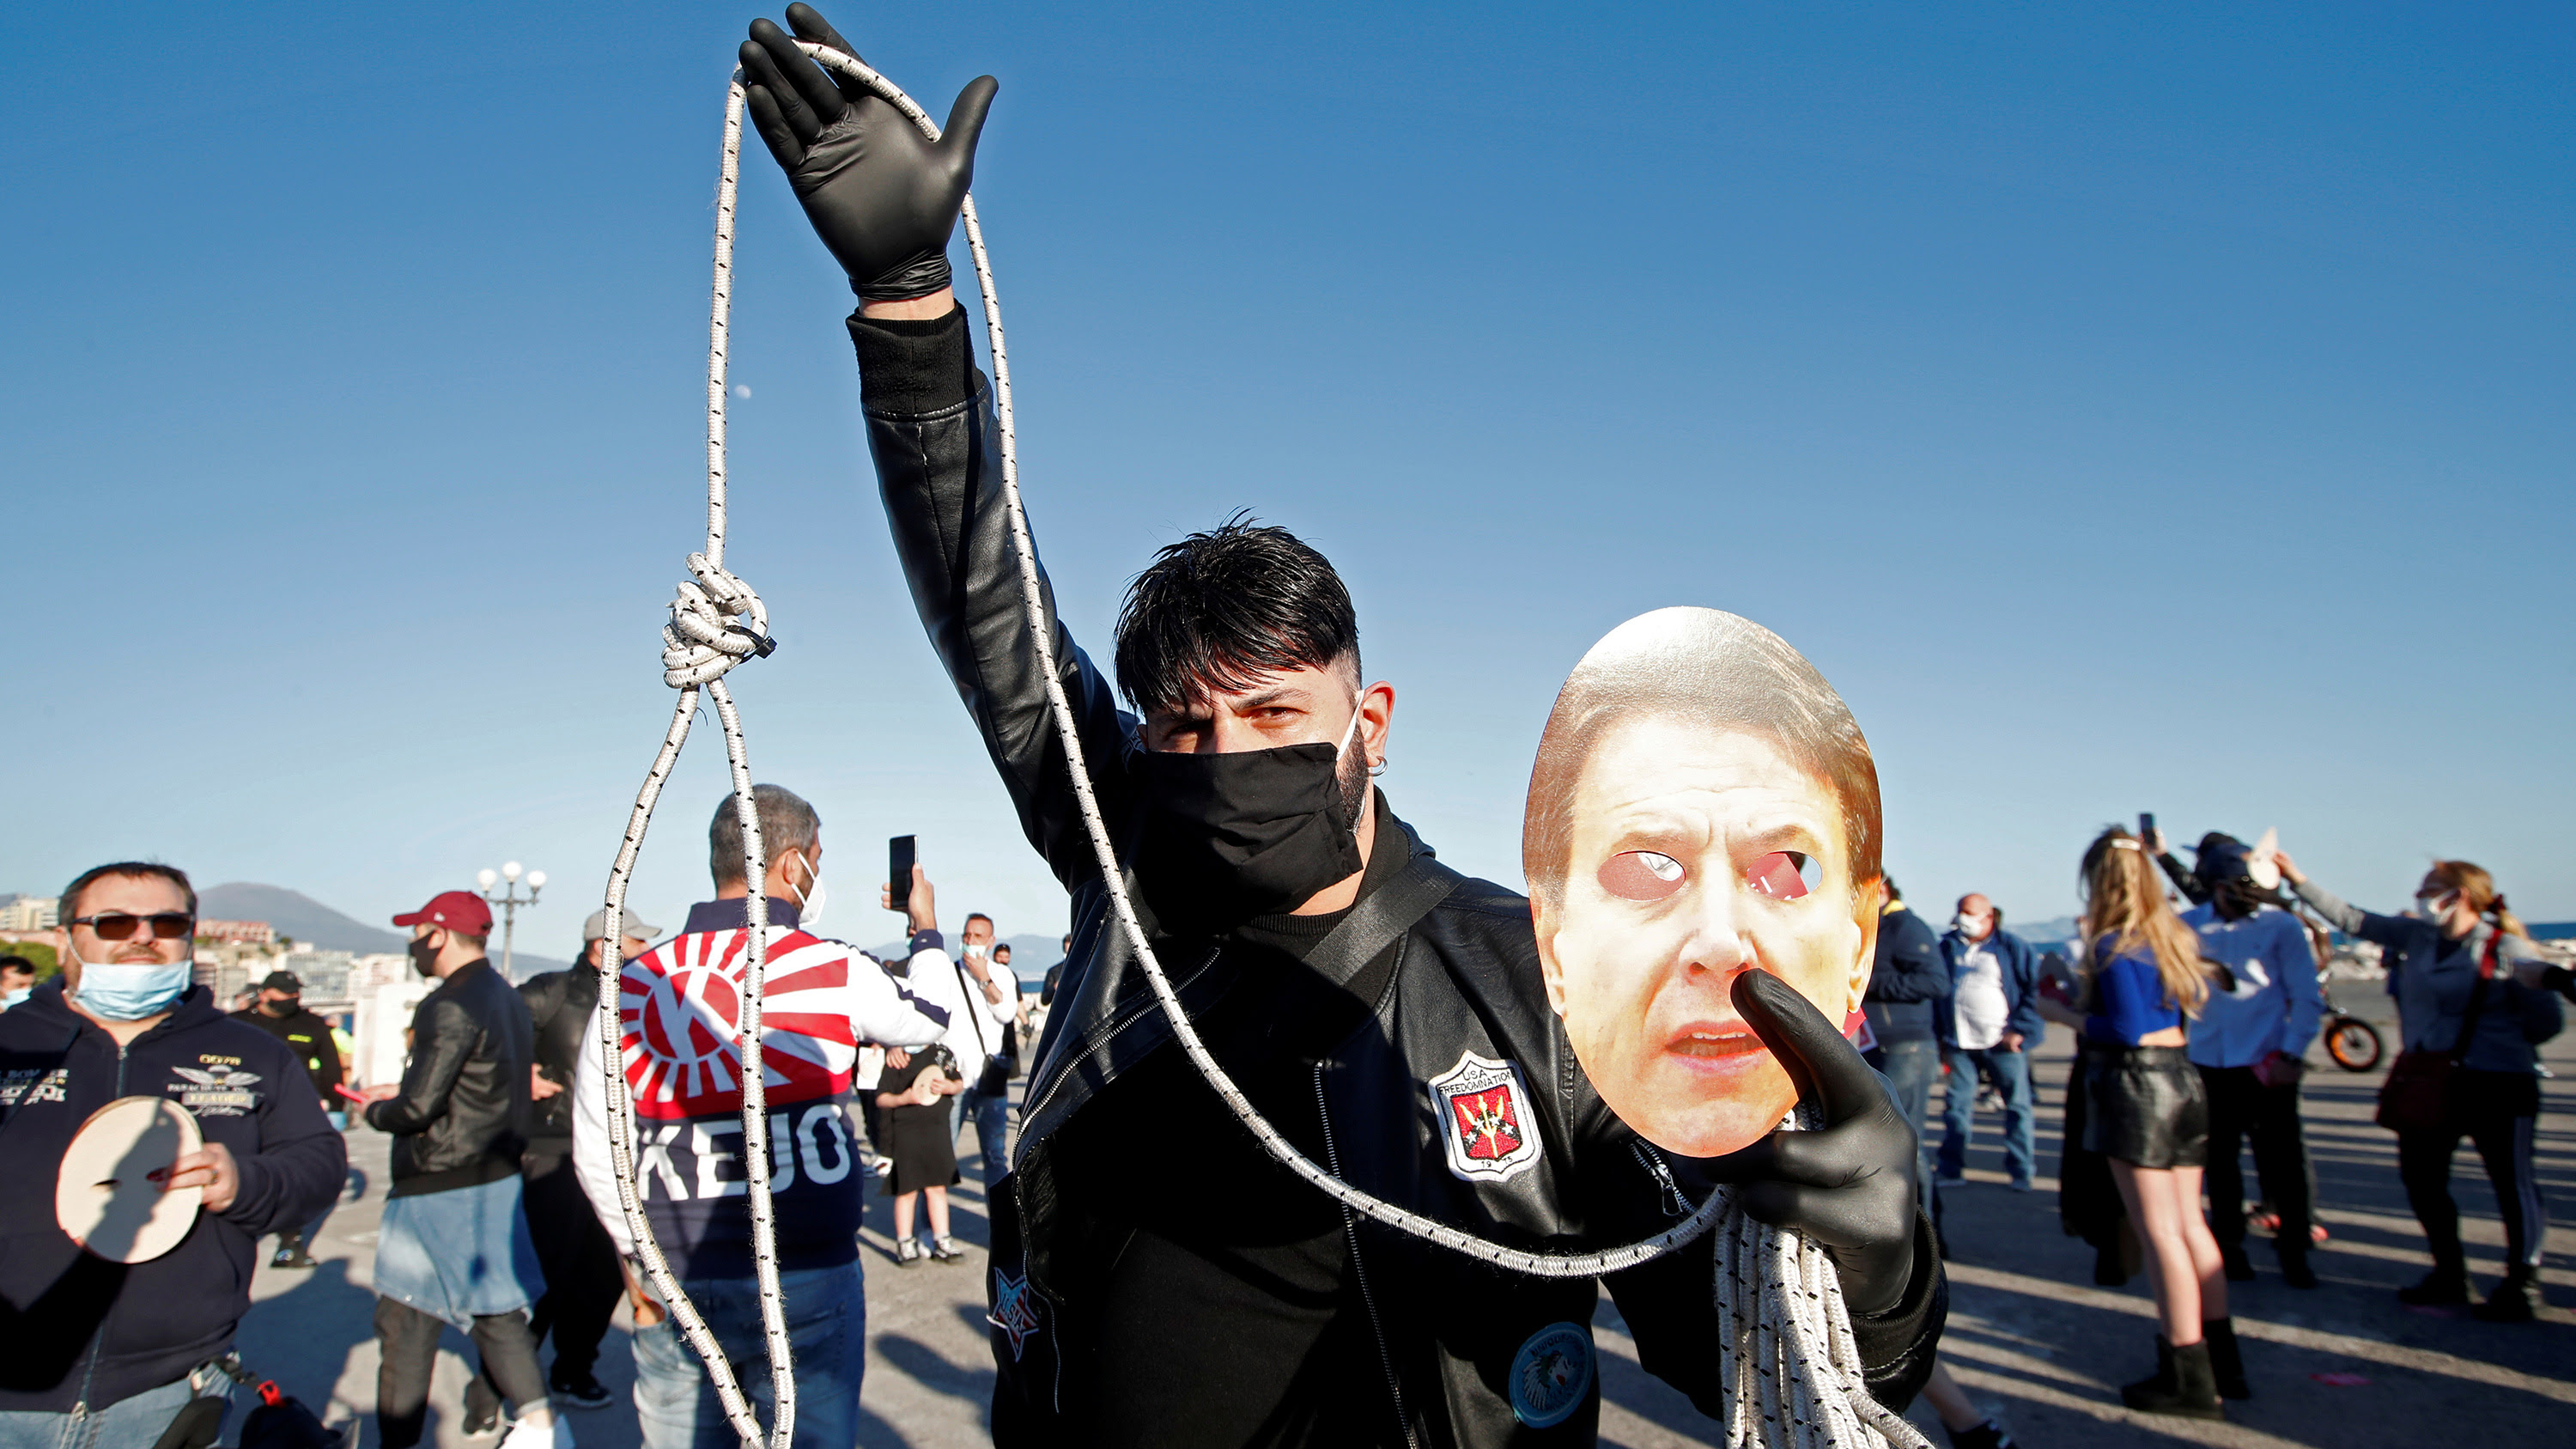 The photo shows a man with a mask brandishing a noose and a picture of the prime minister.